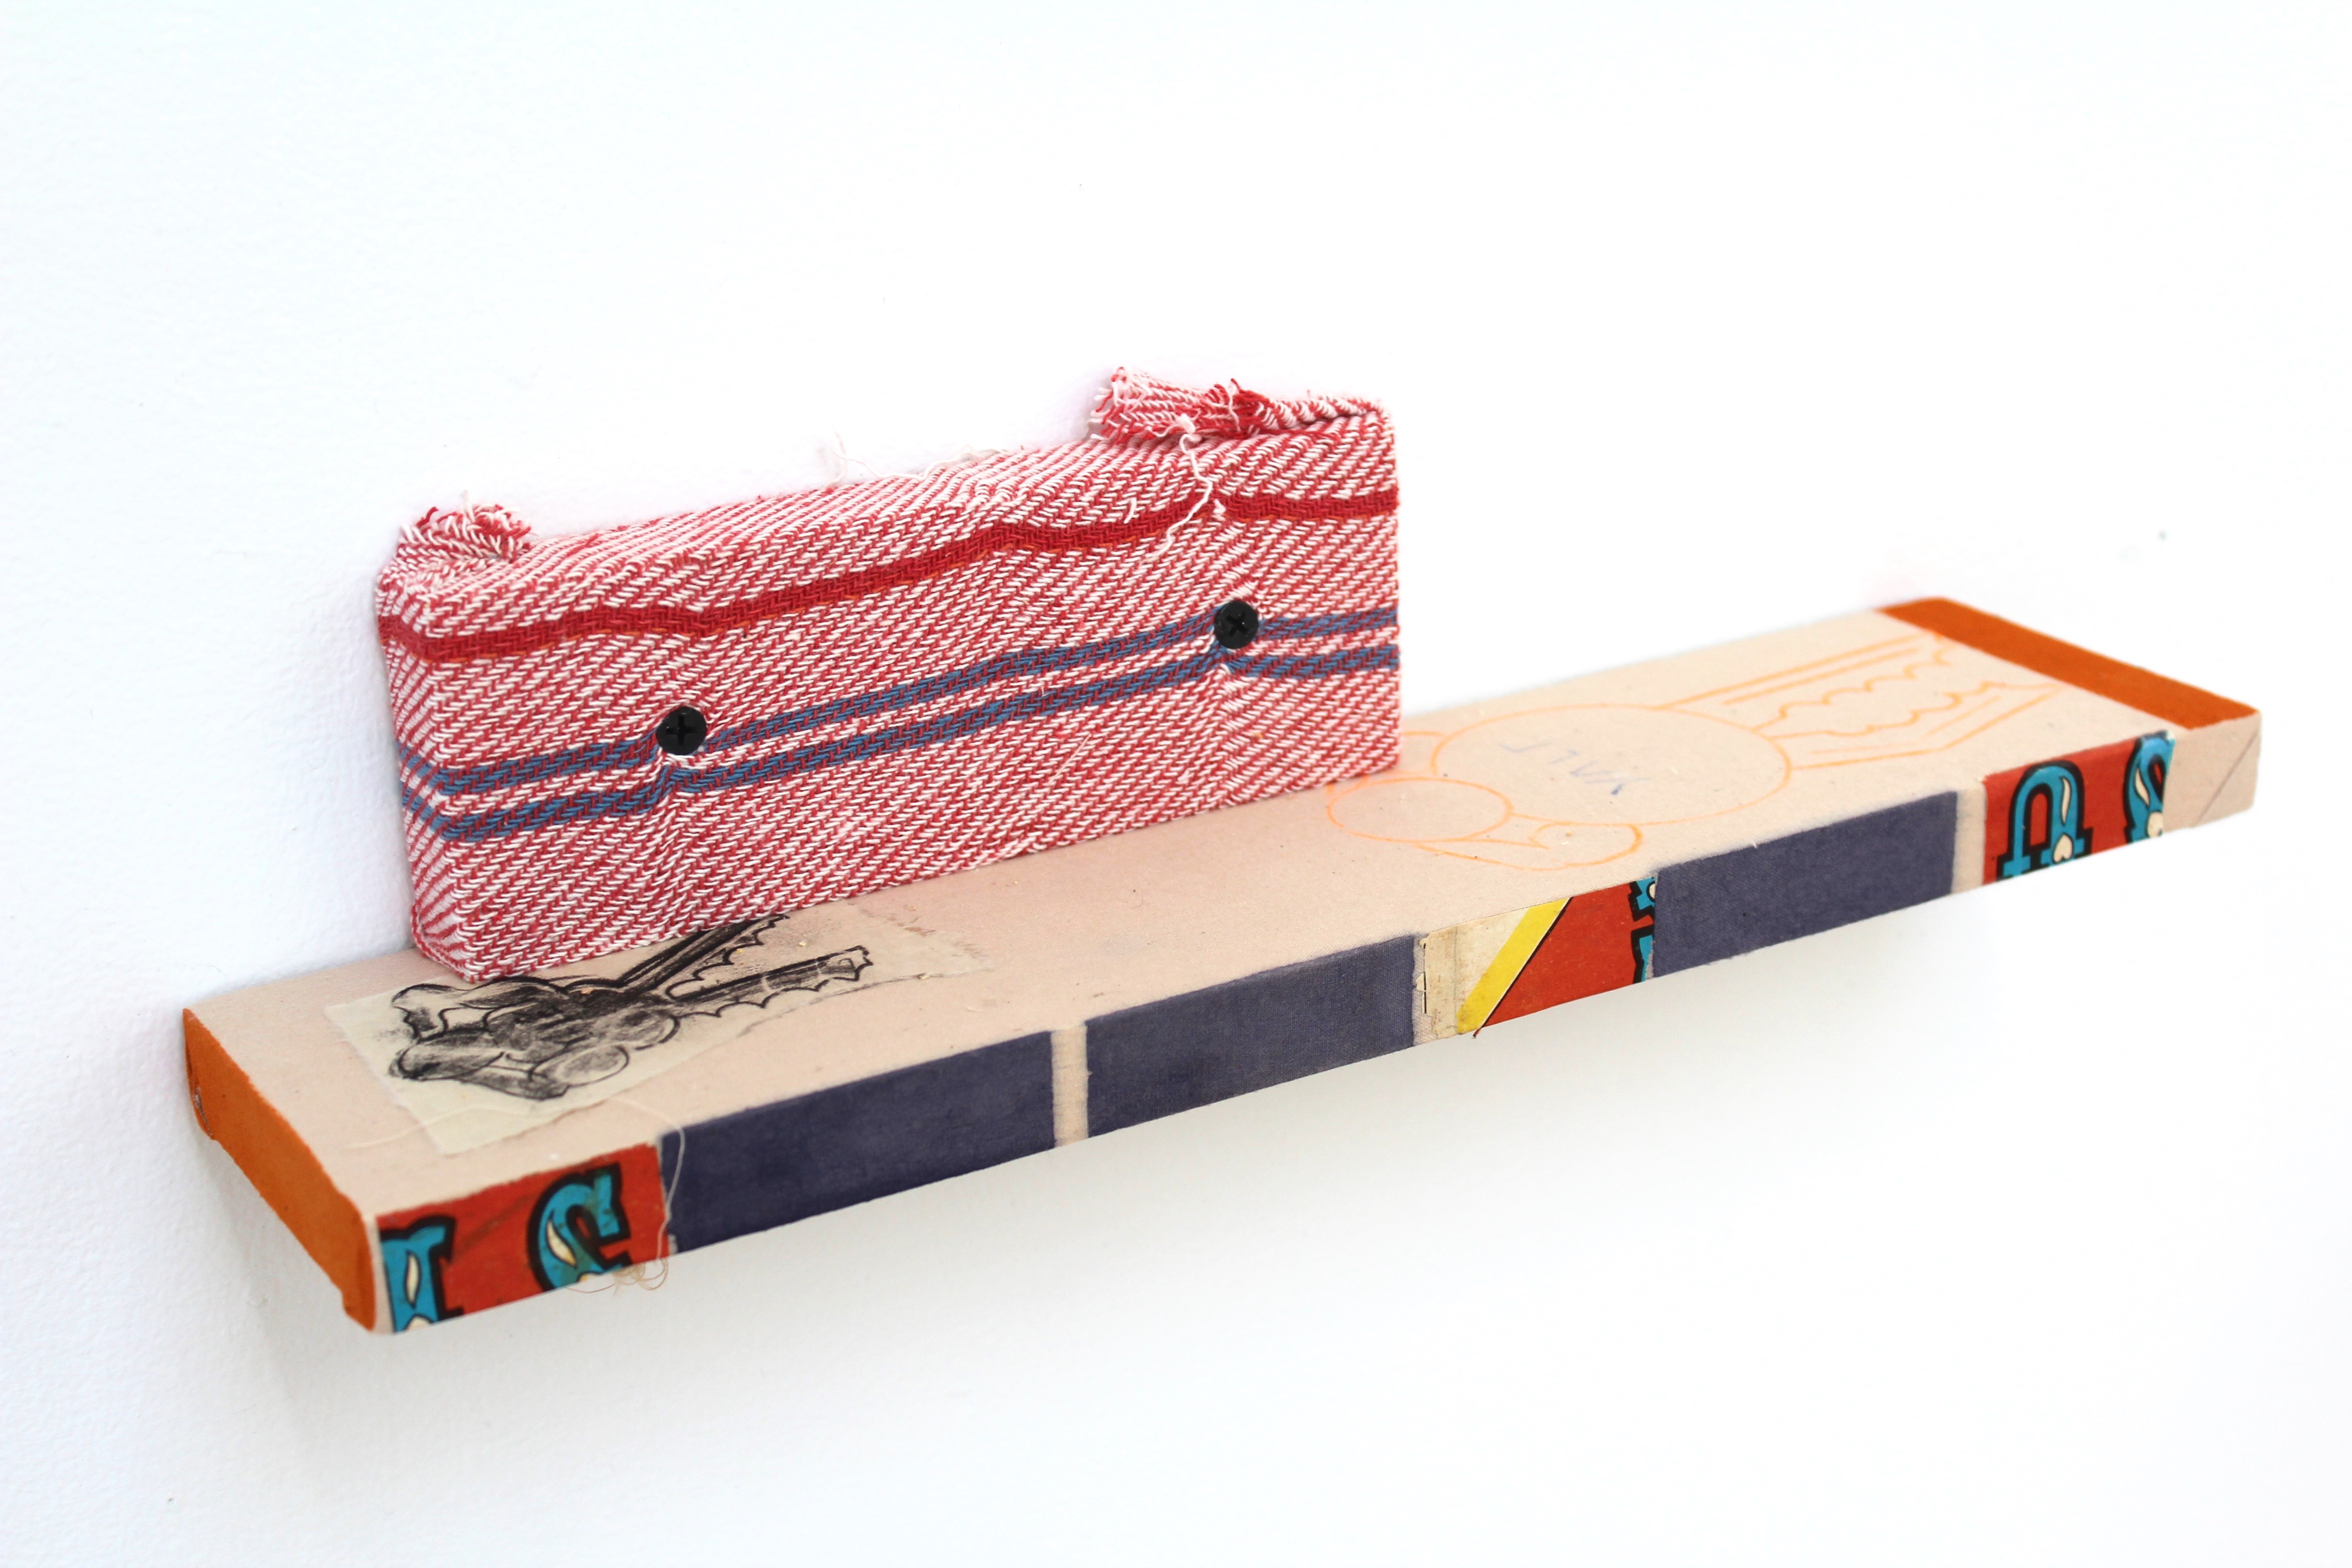 Kevin McNamee-Tweed.<em> Astrud Shelf</em>, 2019. Ink on wood with fabric, pencil on paper drawing, and affixed newsprint, 3 1/4 x 14 1/4 x 3 1/2 inches  (8.3 x 36.2 x 8.9 cm)